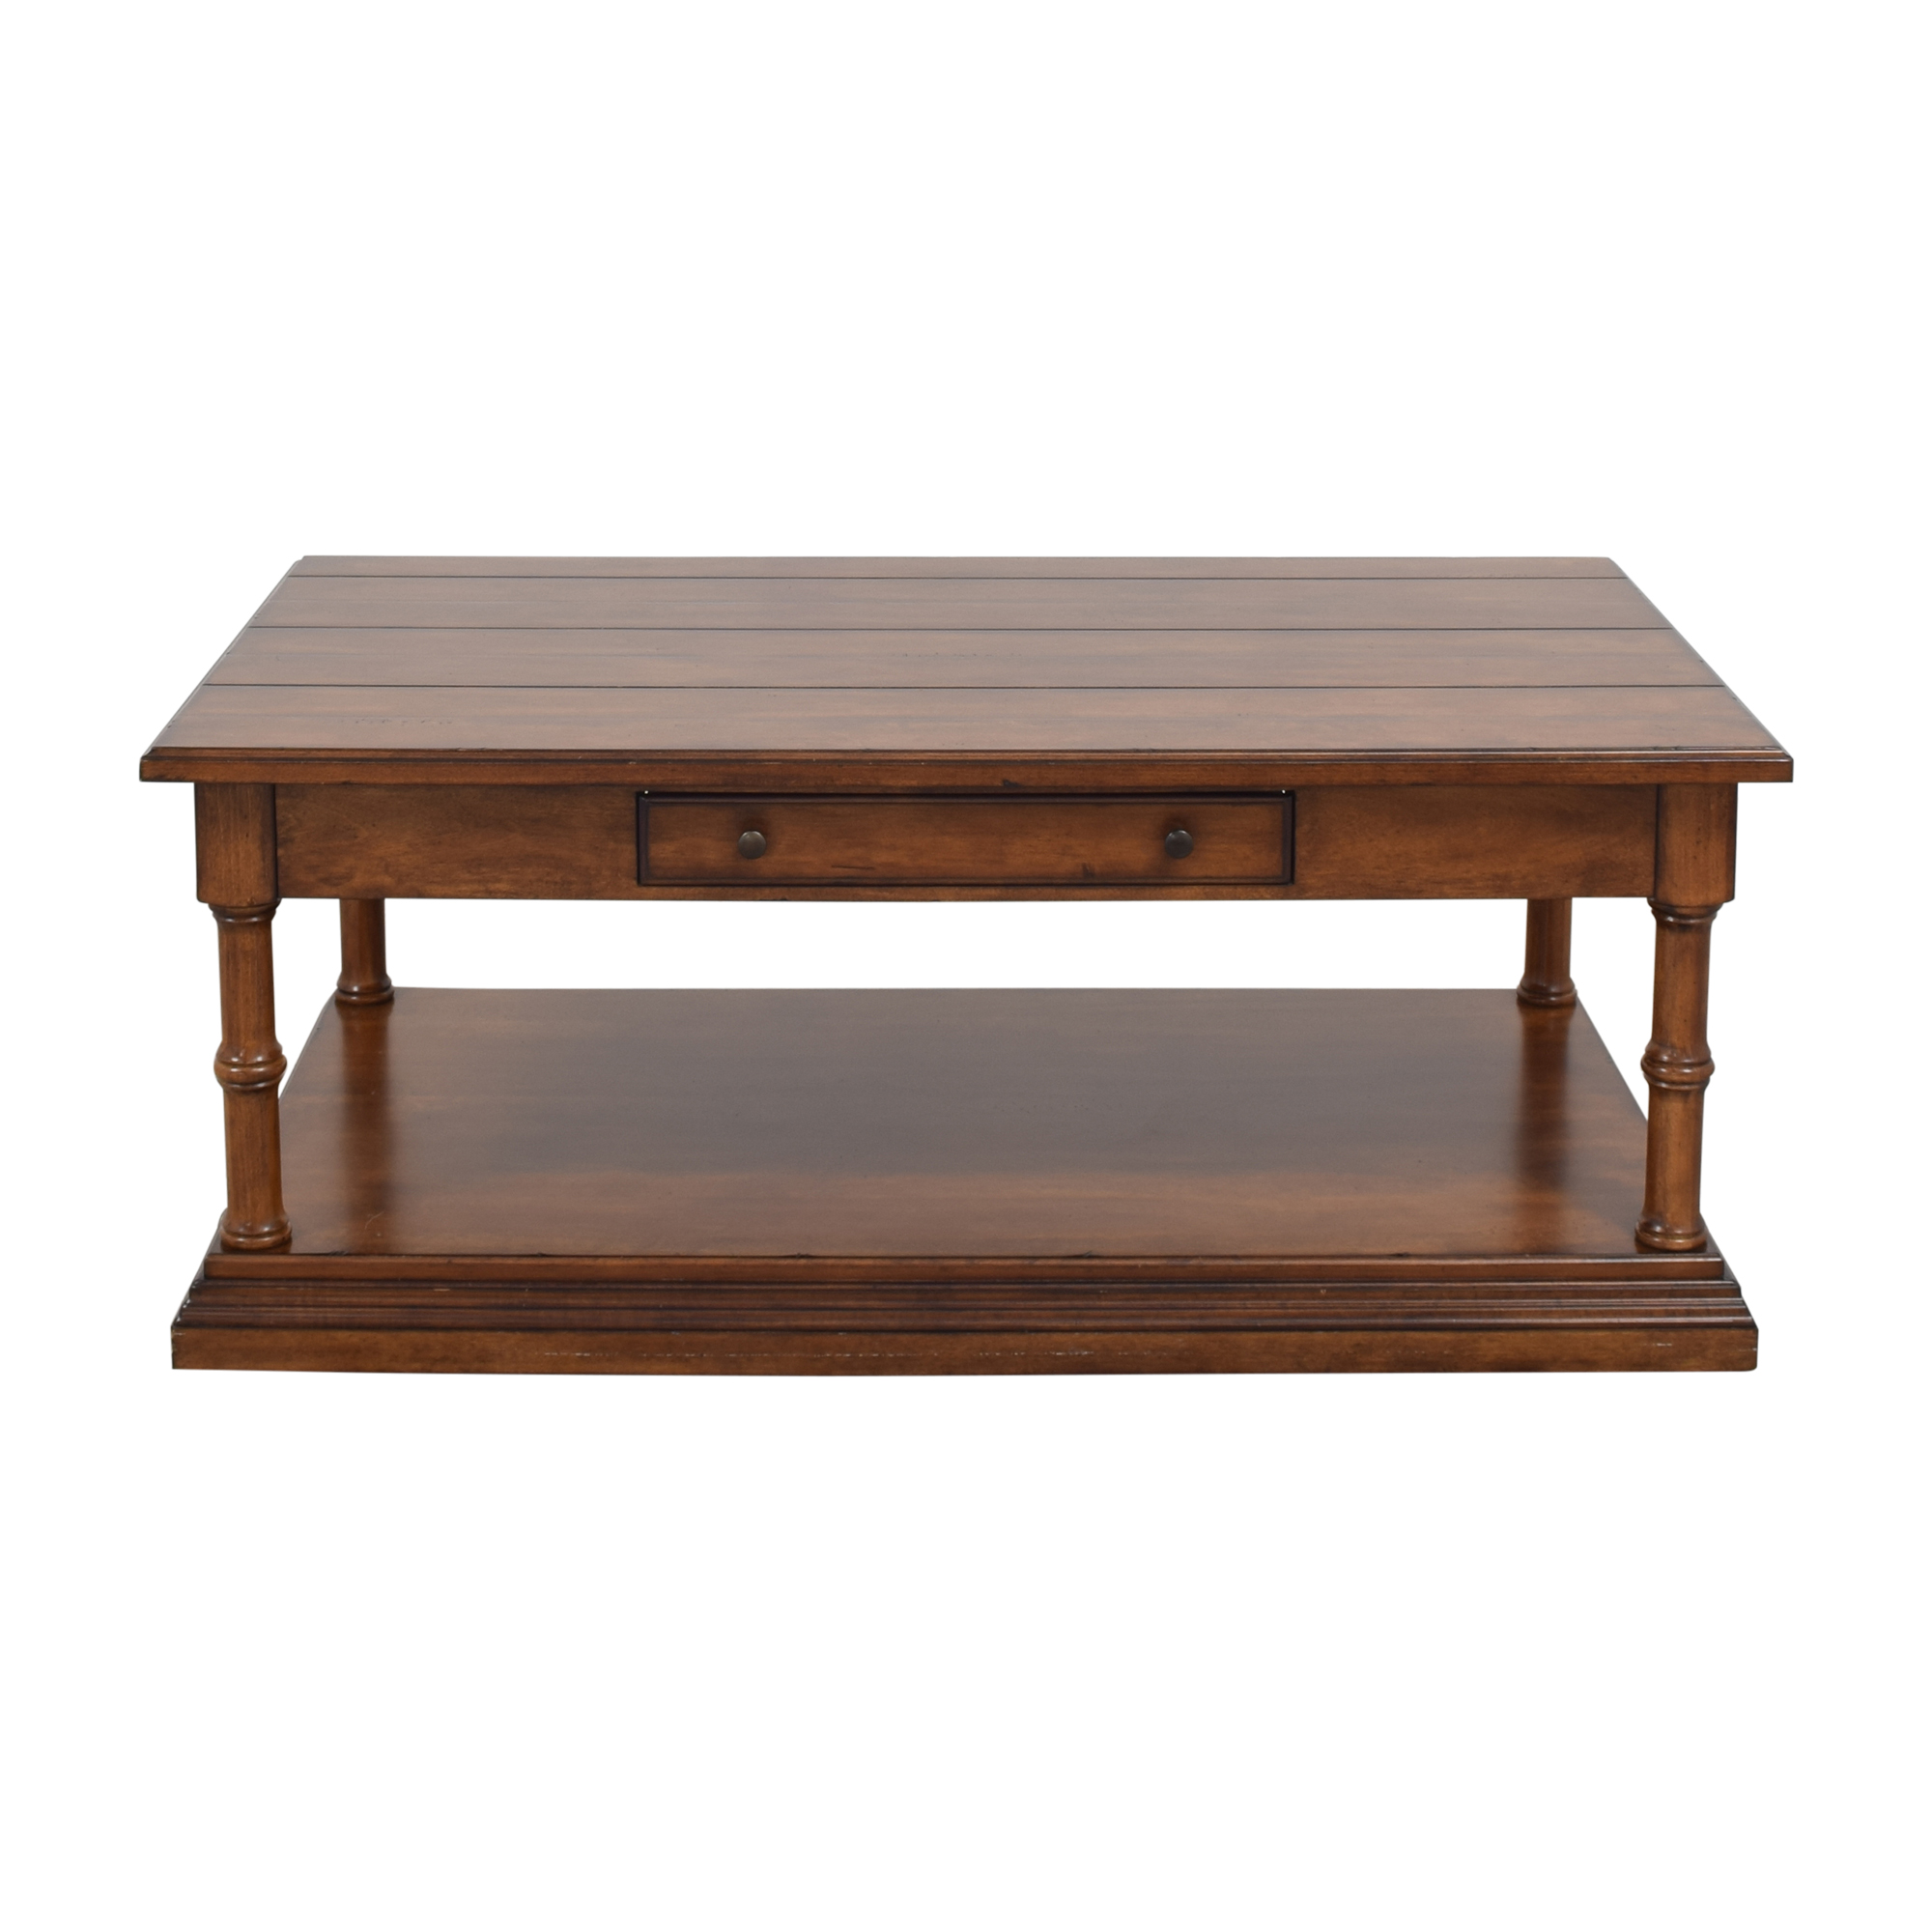 Thomasville Thomasville Two Tier Coffee Table